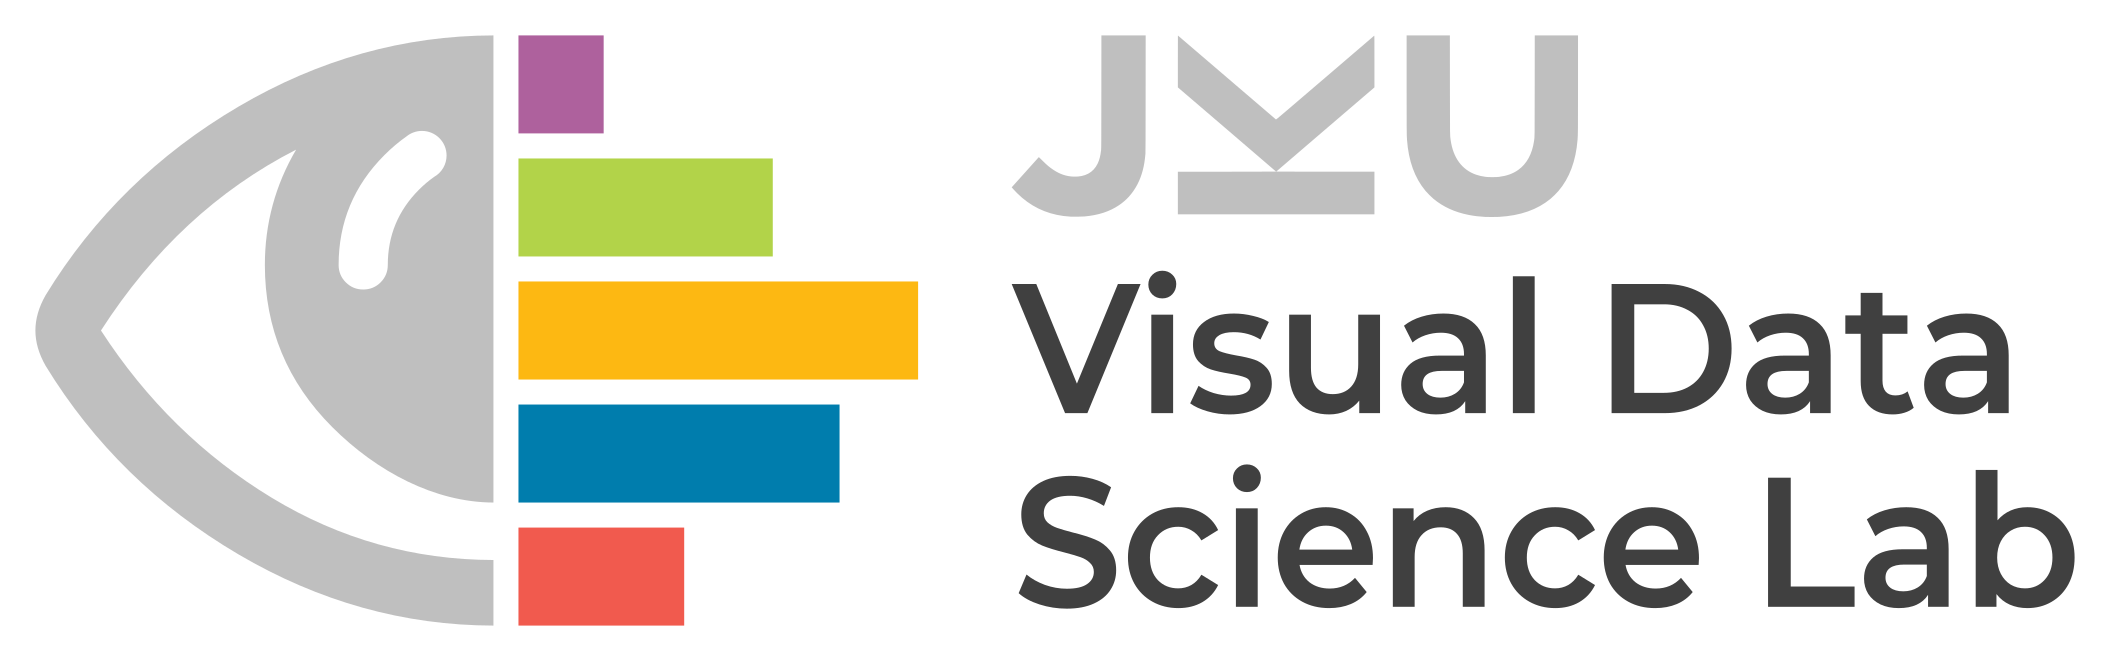 JKU Visual Data Science Lab - Logo